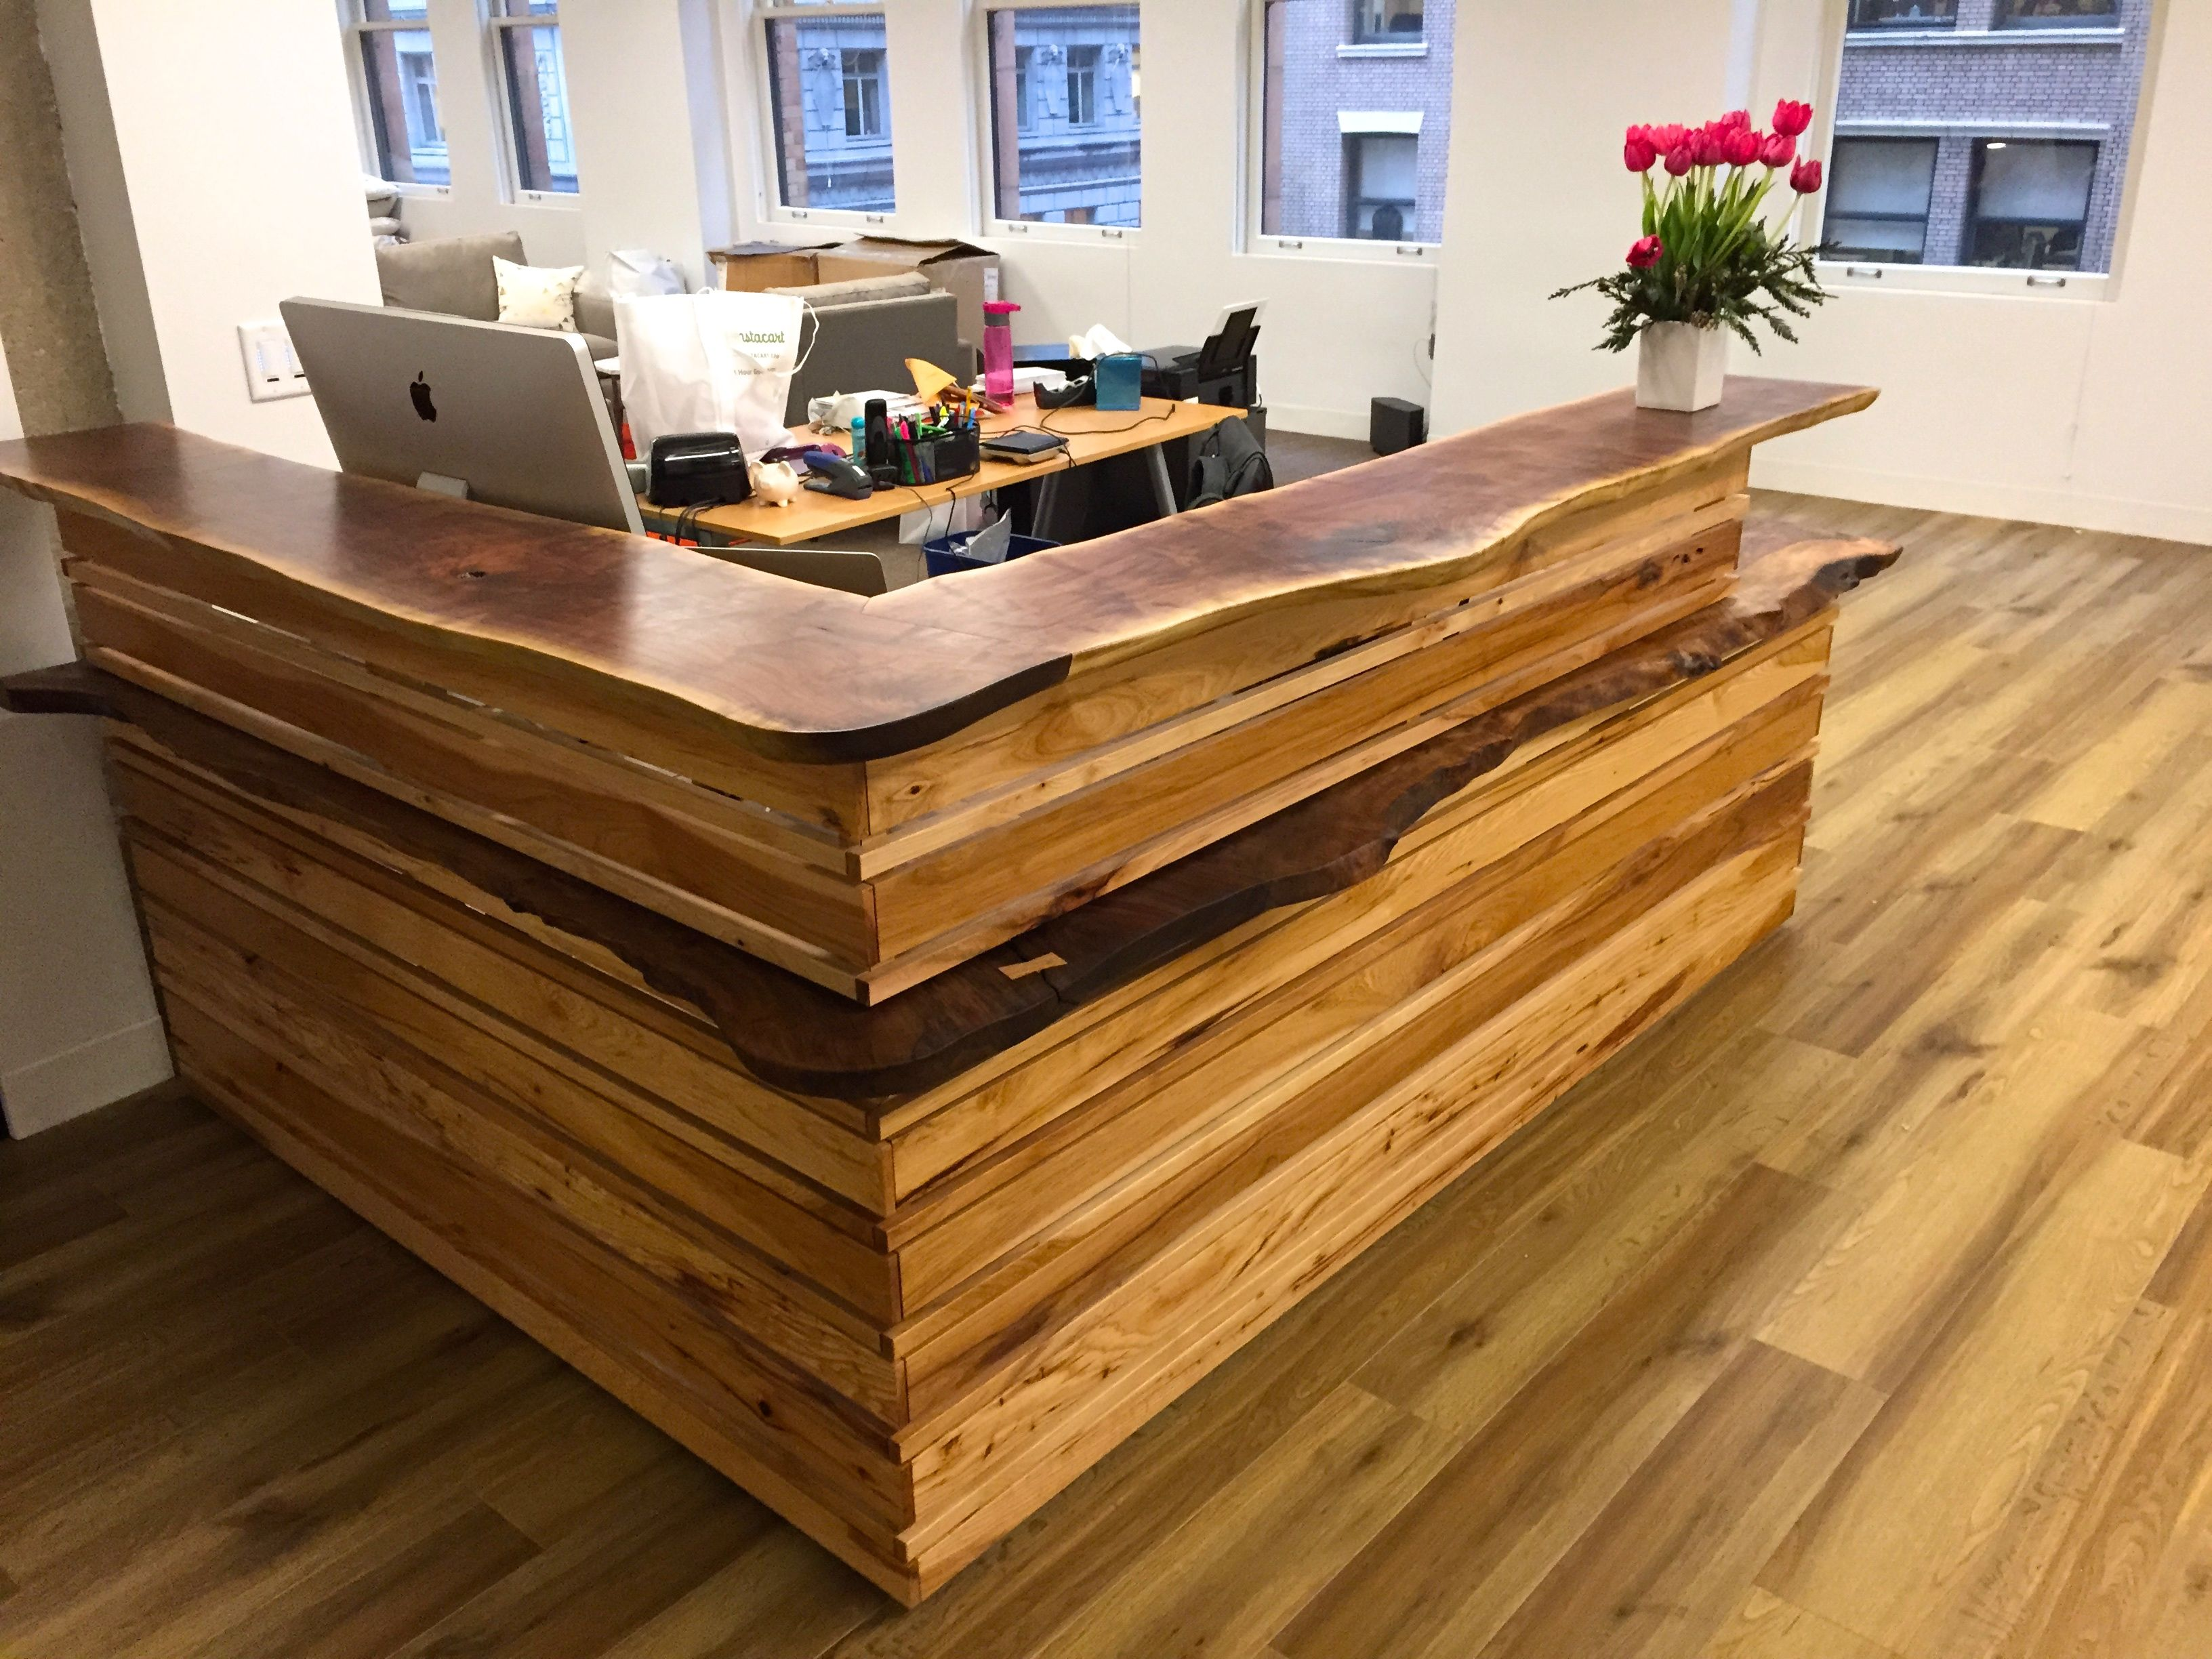 live edge wood design for reception desk reception desks front desk sales counter retail. Black Bedroom Furniture Sets. Home Design Ideas